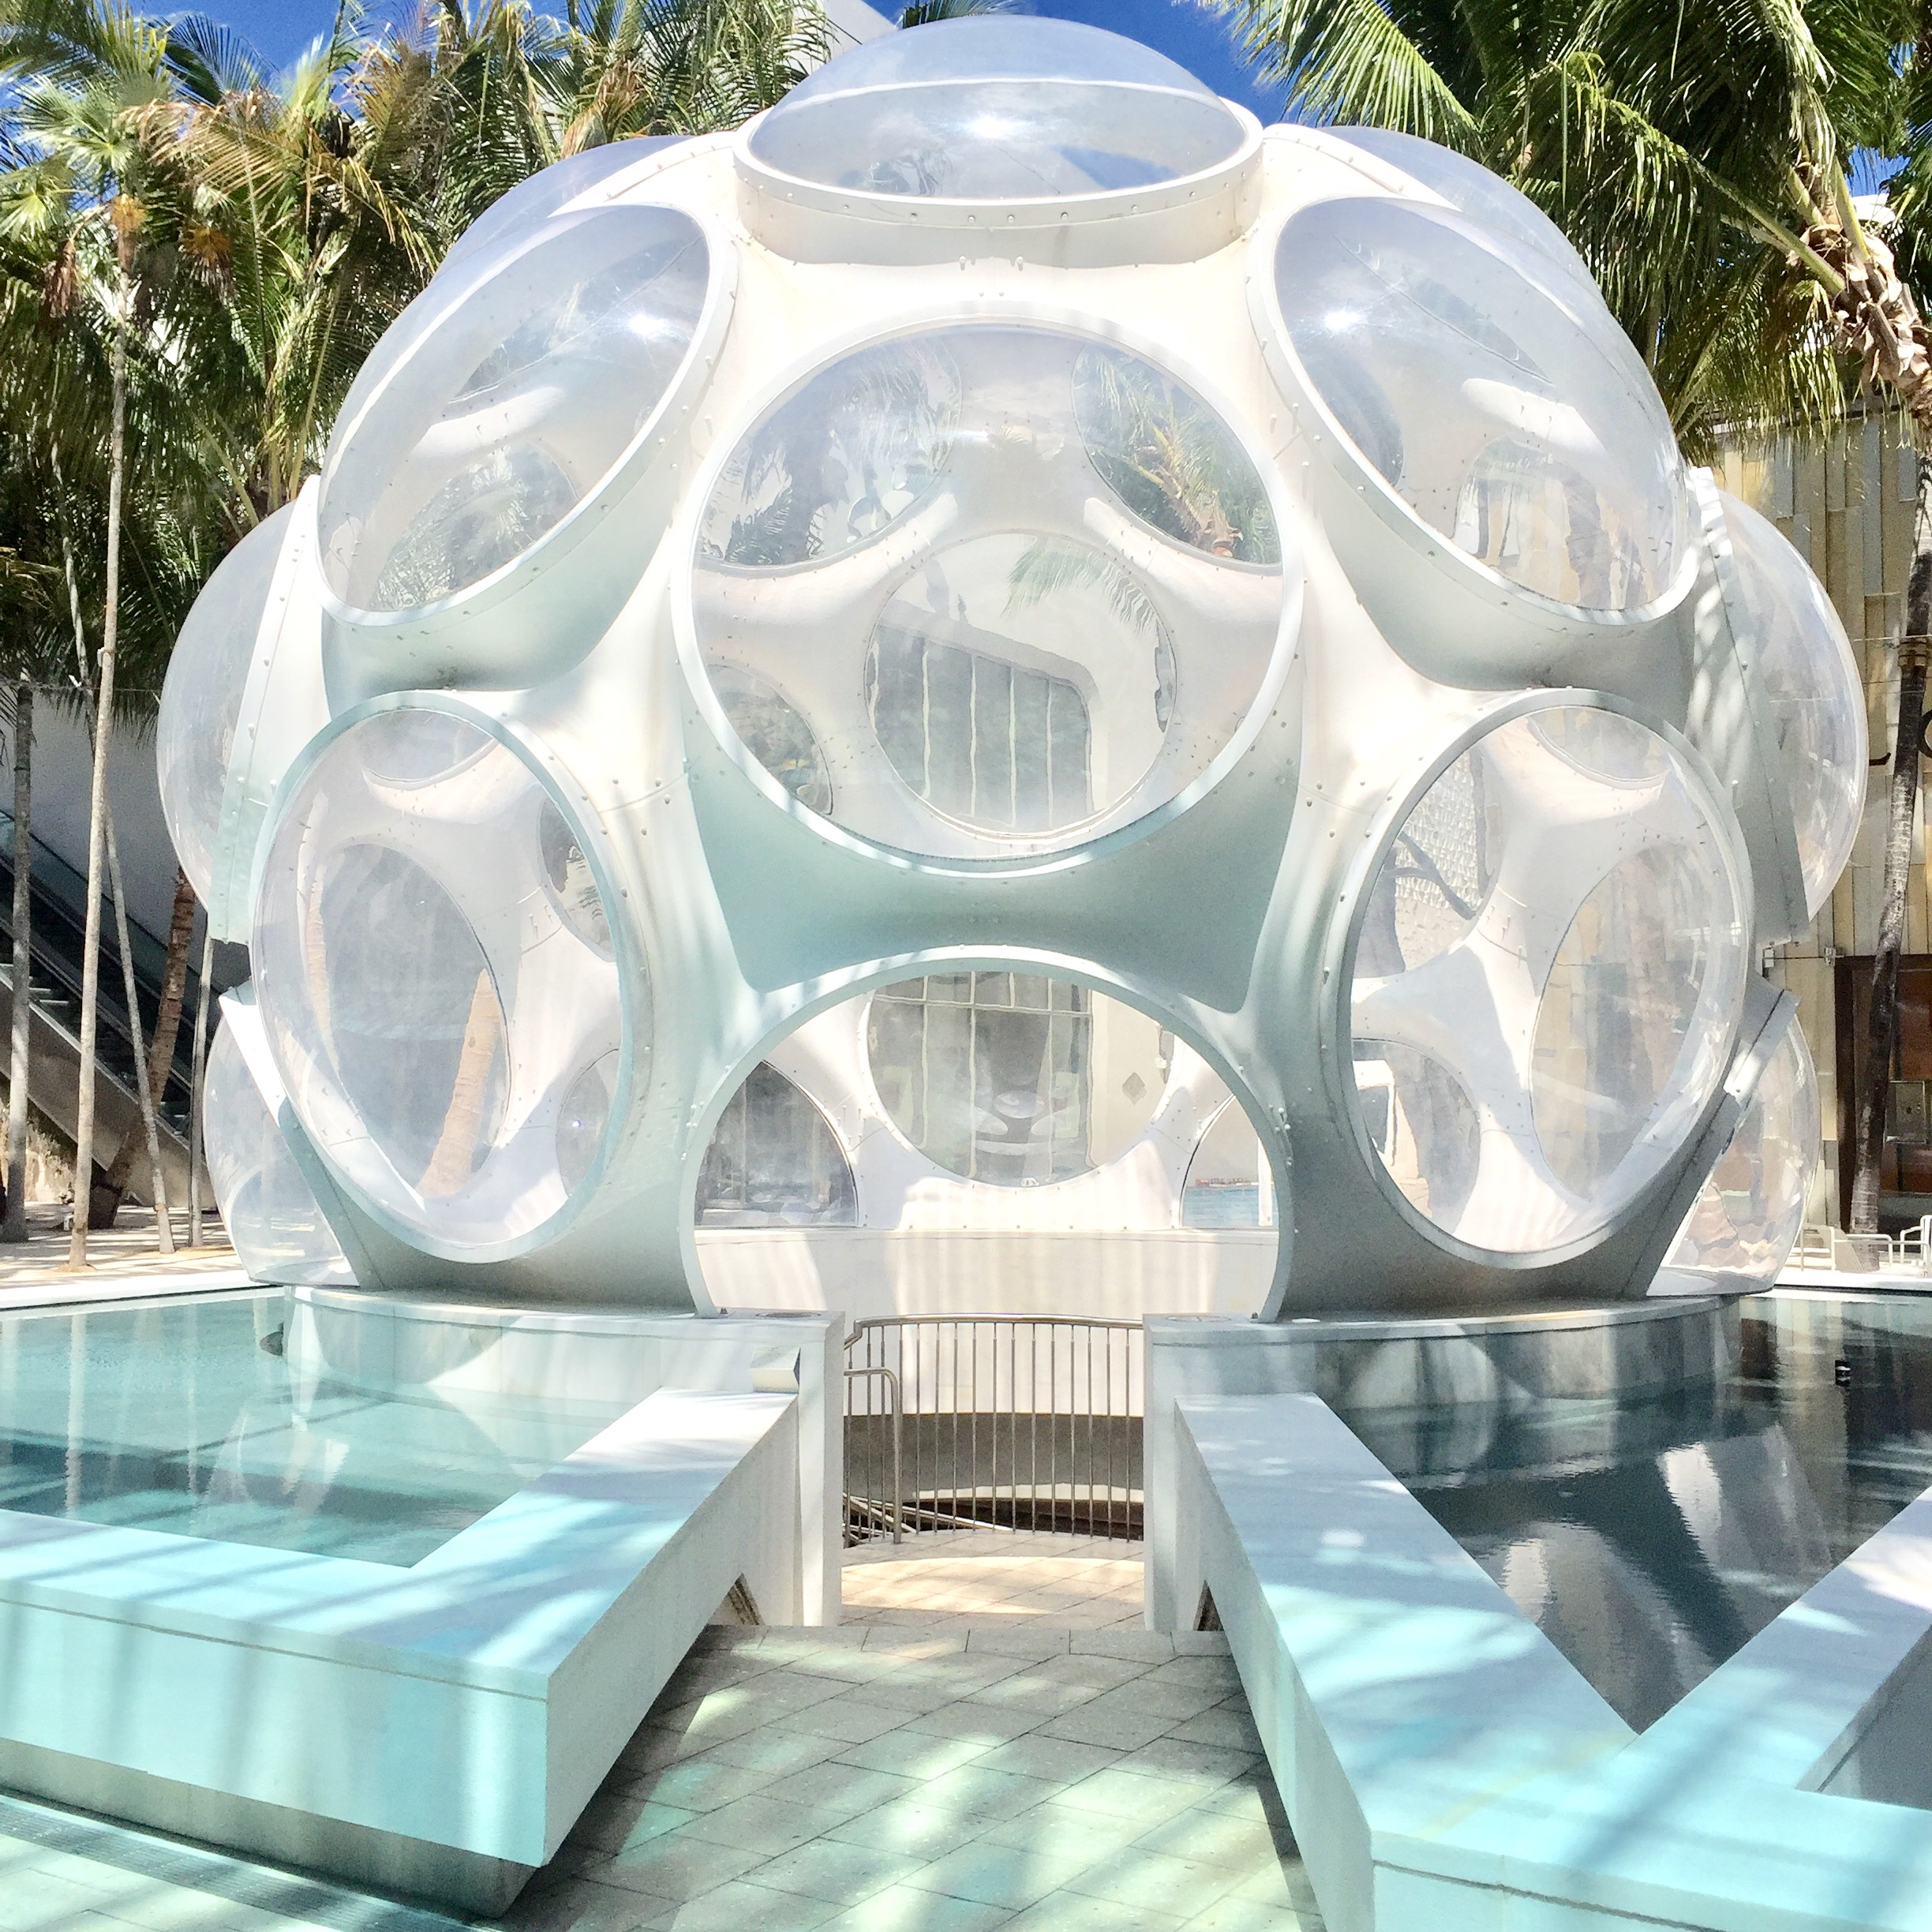 Palm Court Fly's Eye Dome at Miami Design District